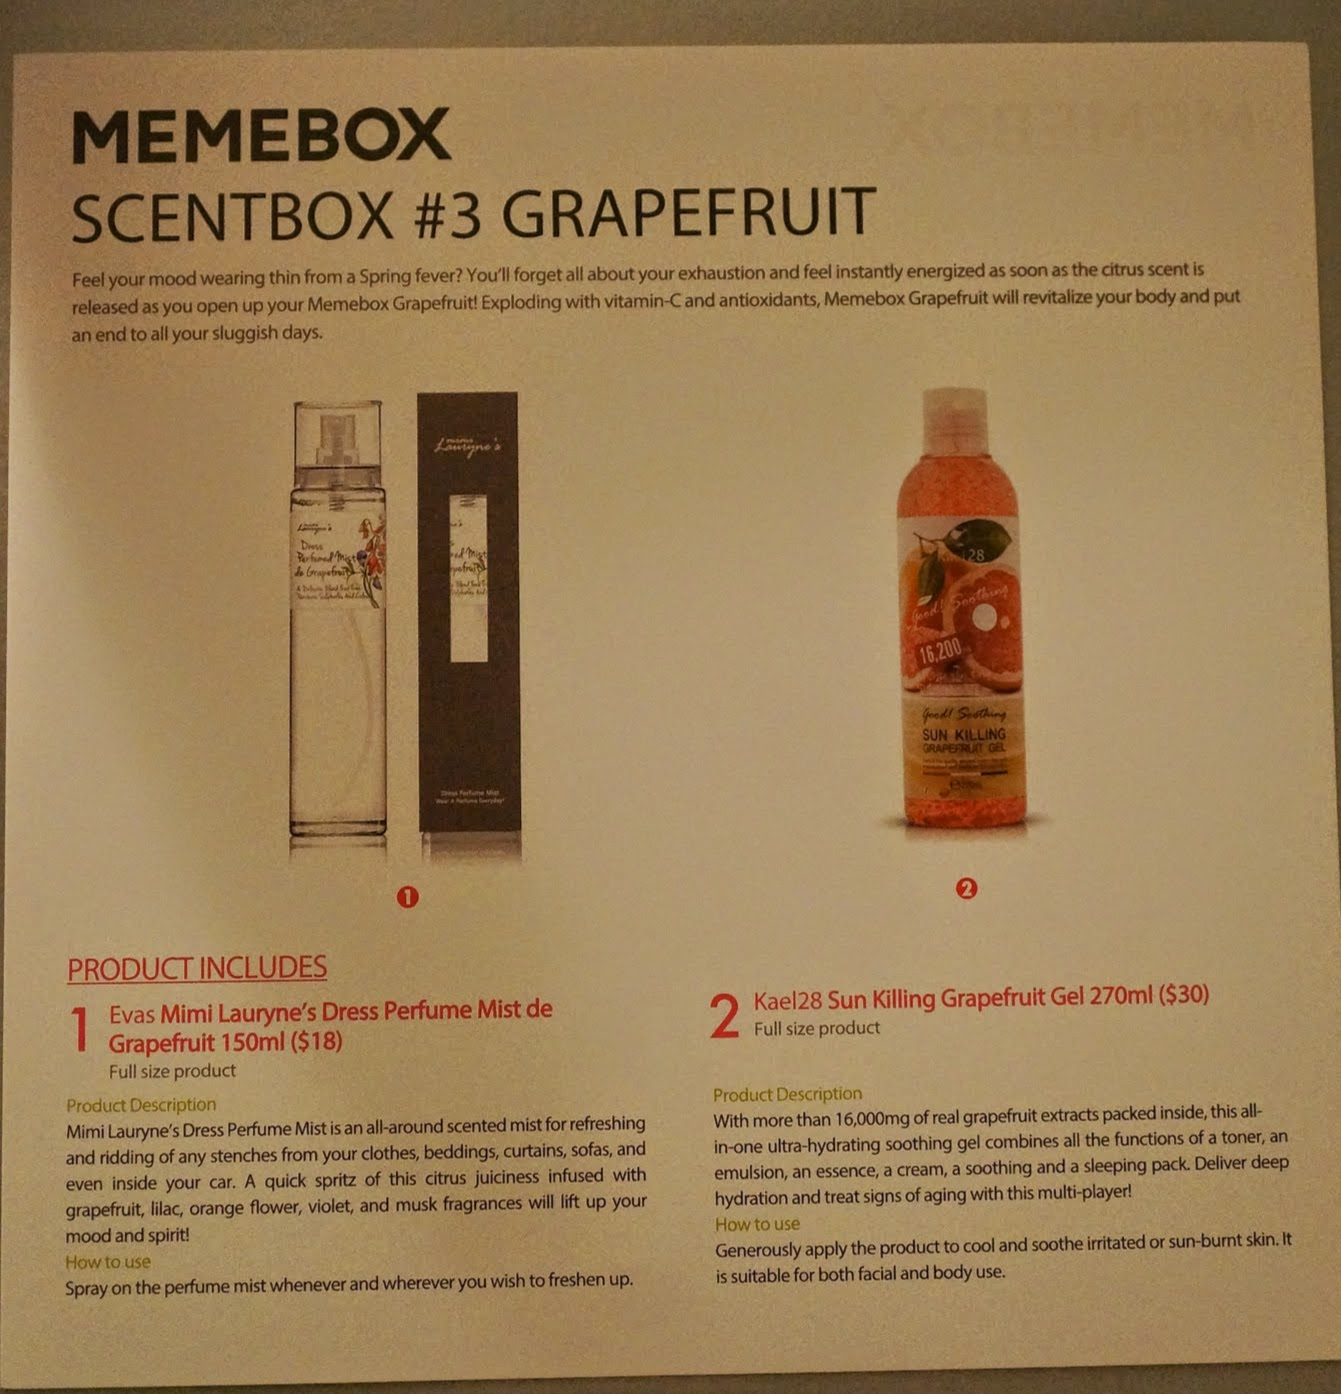 Memebox Scentbox 3 Grapefruit Unboxing Review